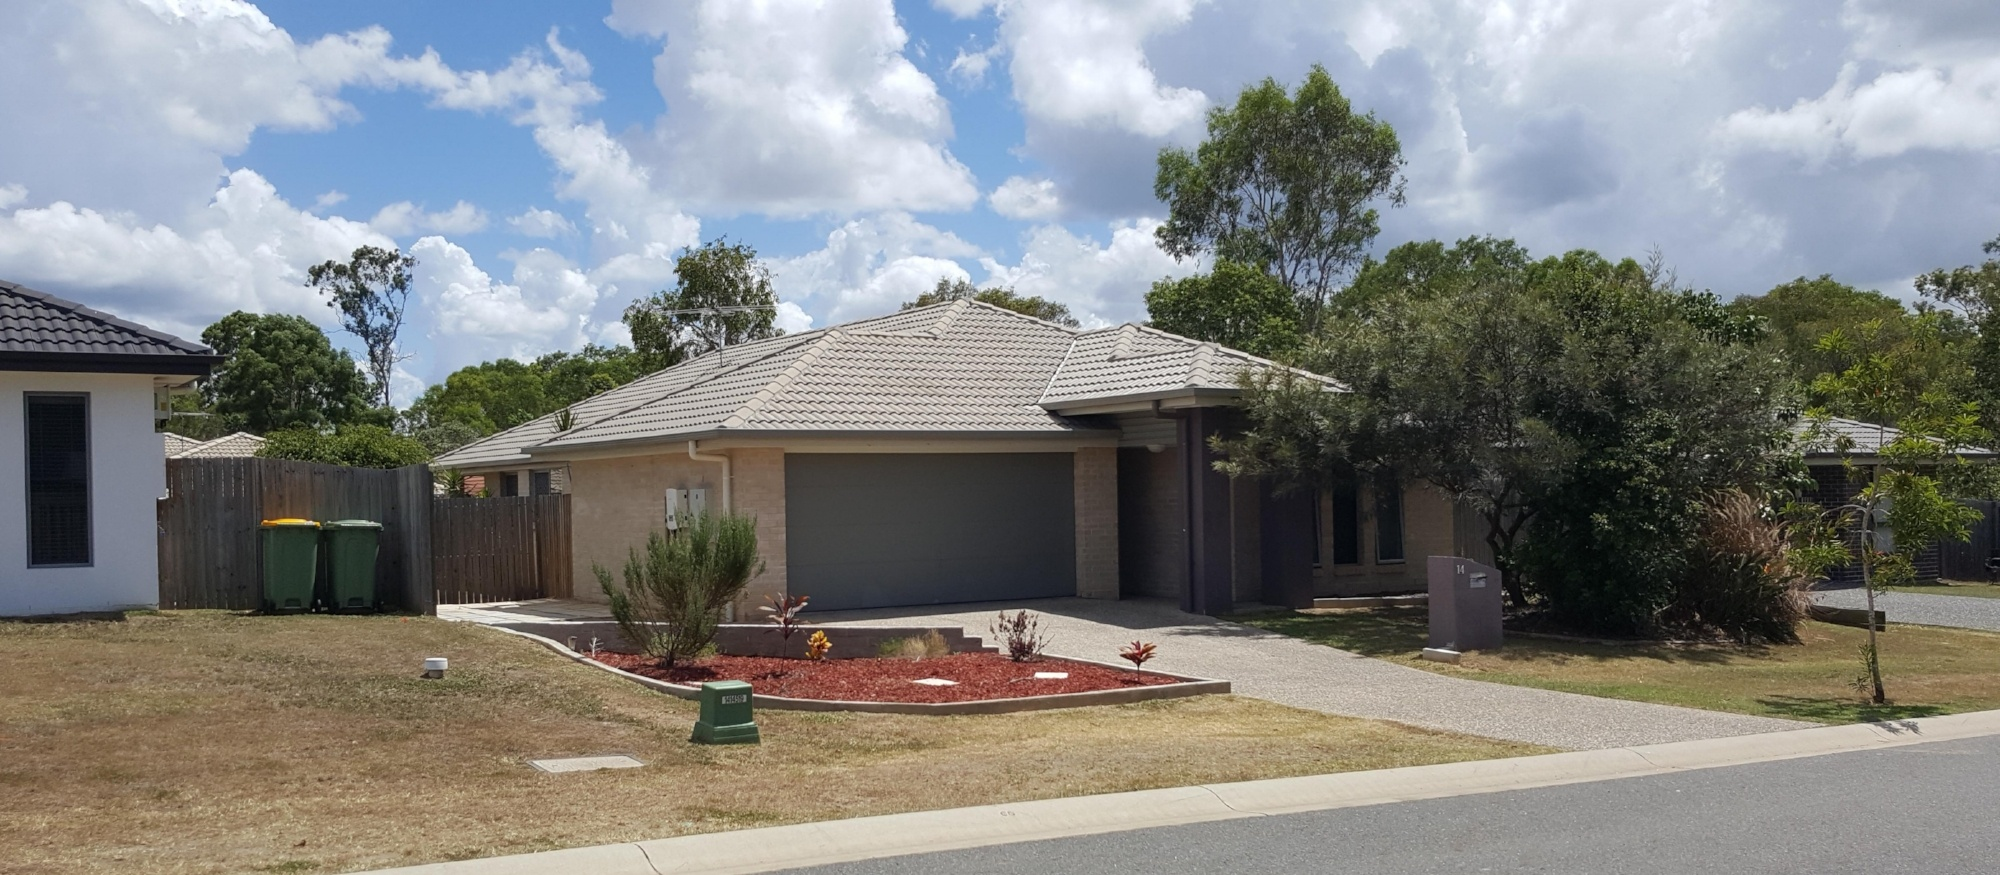 14-Tanglin-Street-Crestmead-cropped-2000